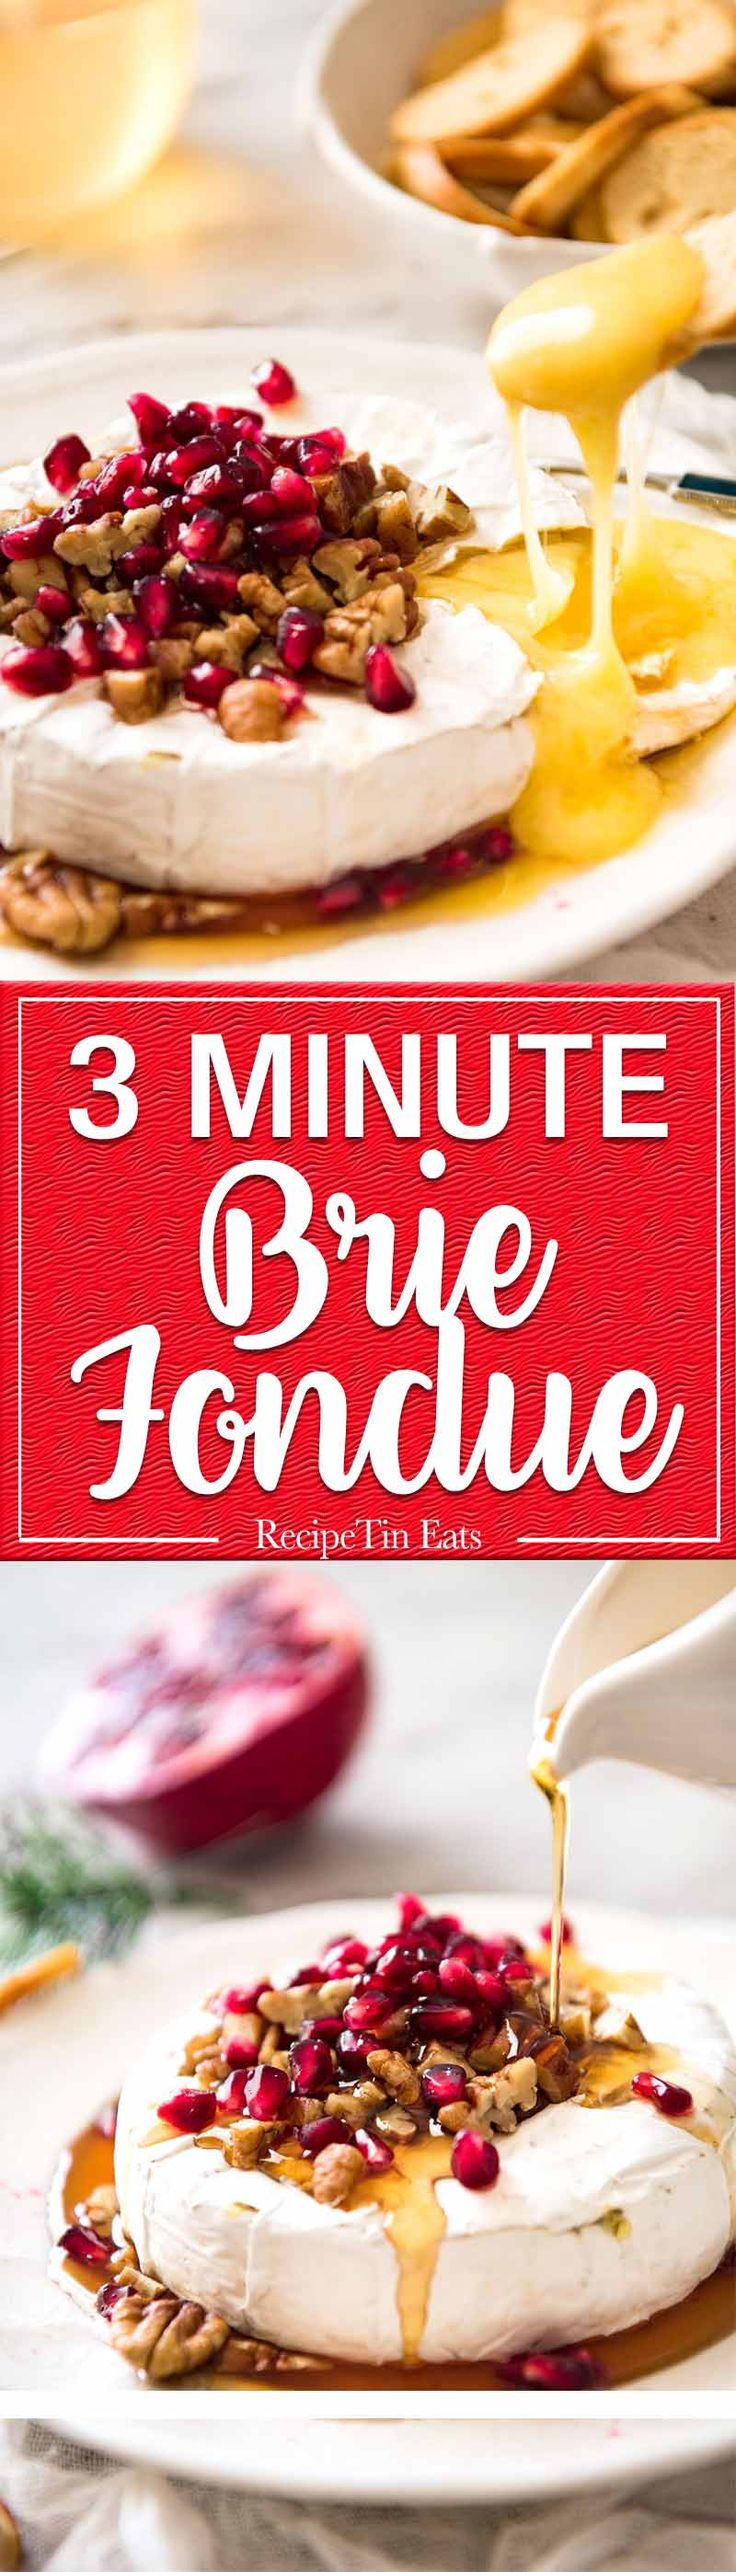 3 Minute Melty Festive Brie - Just microwave for 1 minute and you have an almost-instant baked brie appetizer! www.recipetineats...